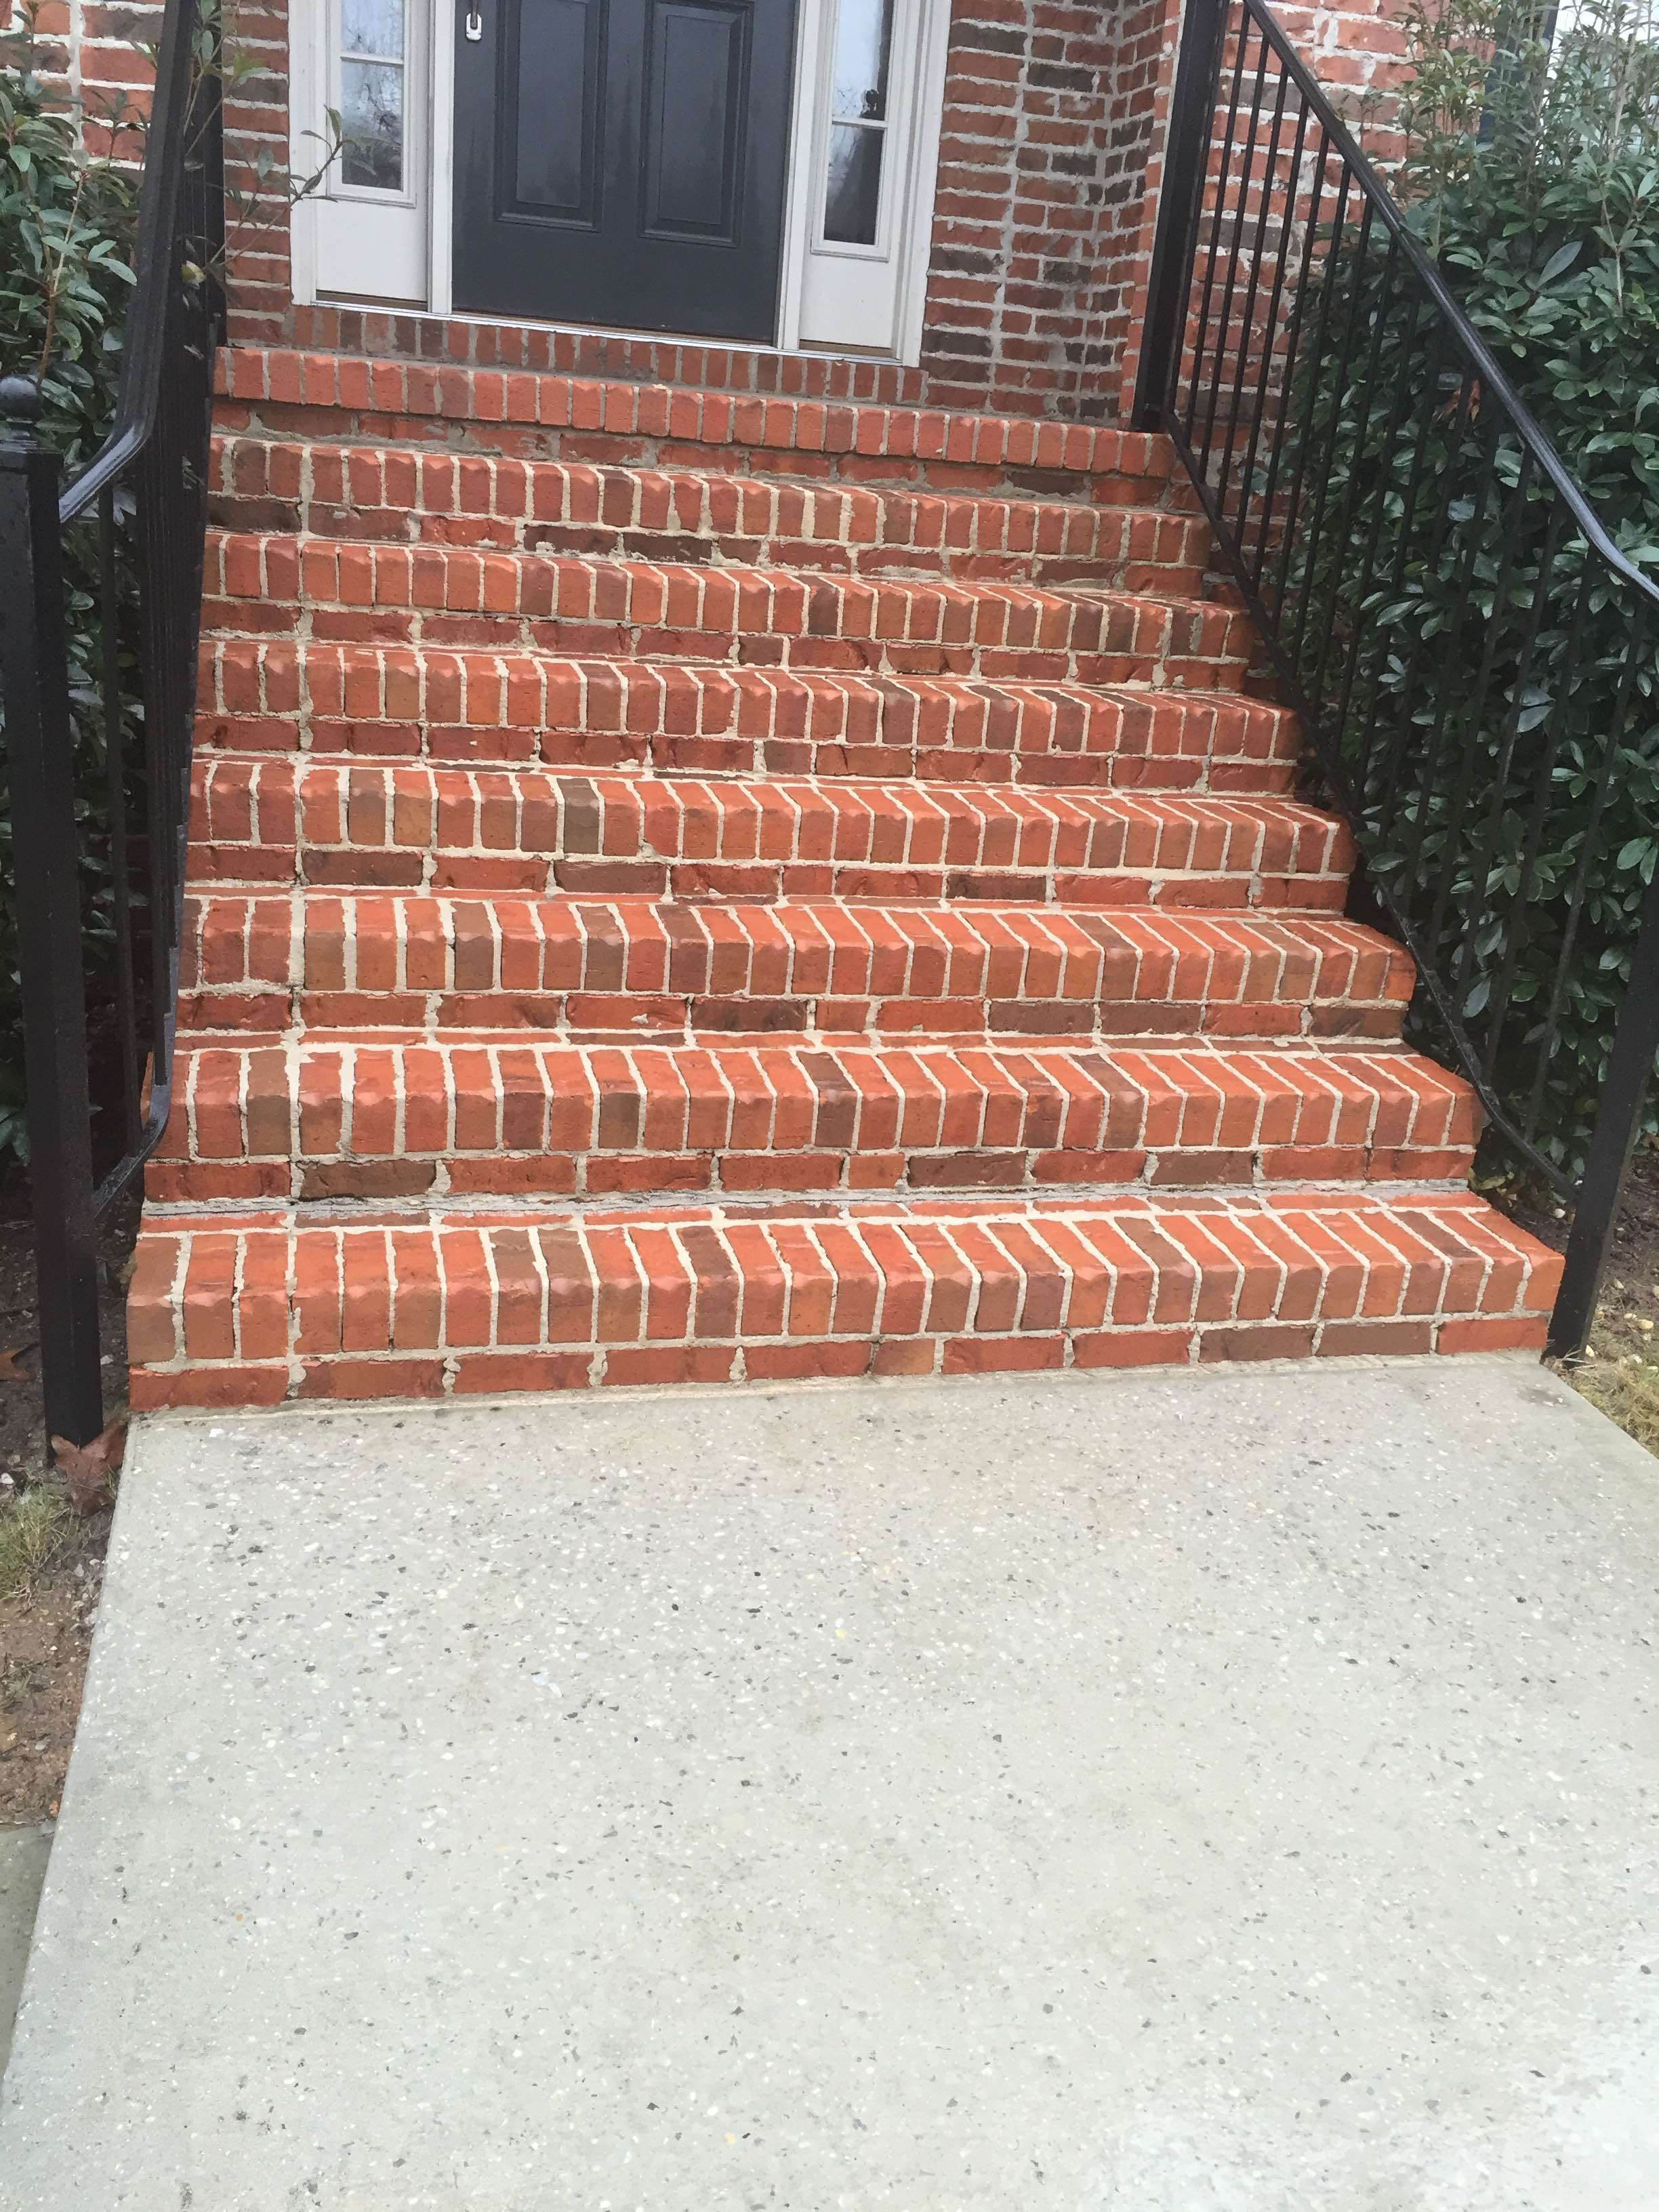 Brick Cleaning & Restoration Birmingham AL | Alabama Deck Restoration